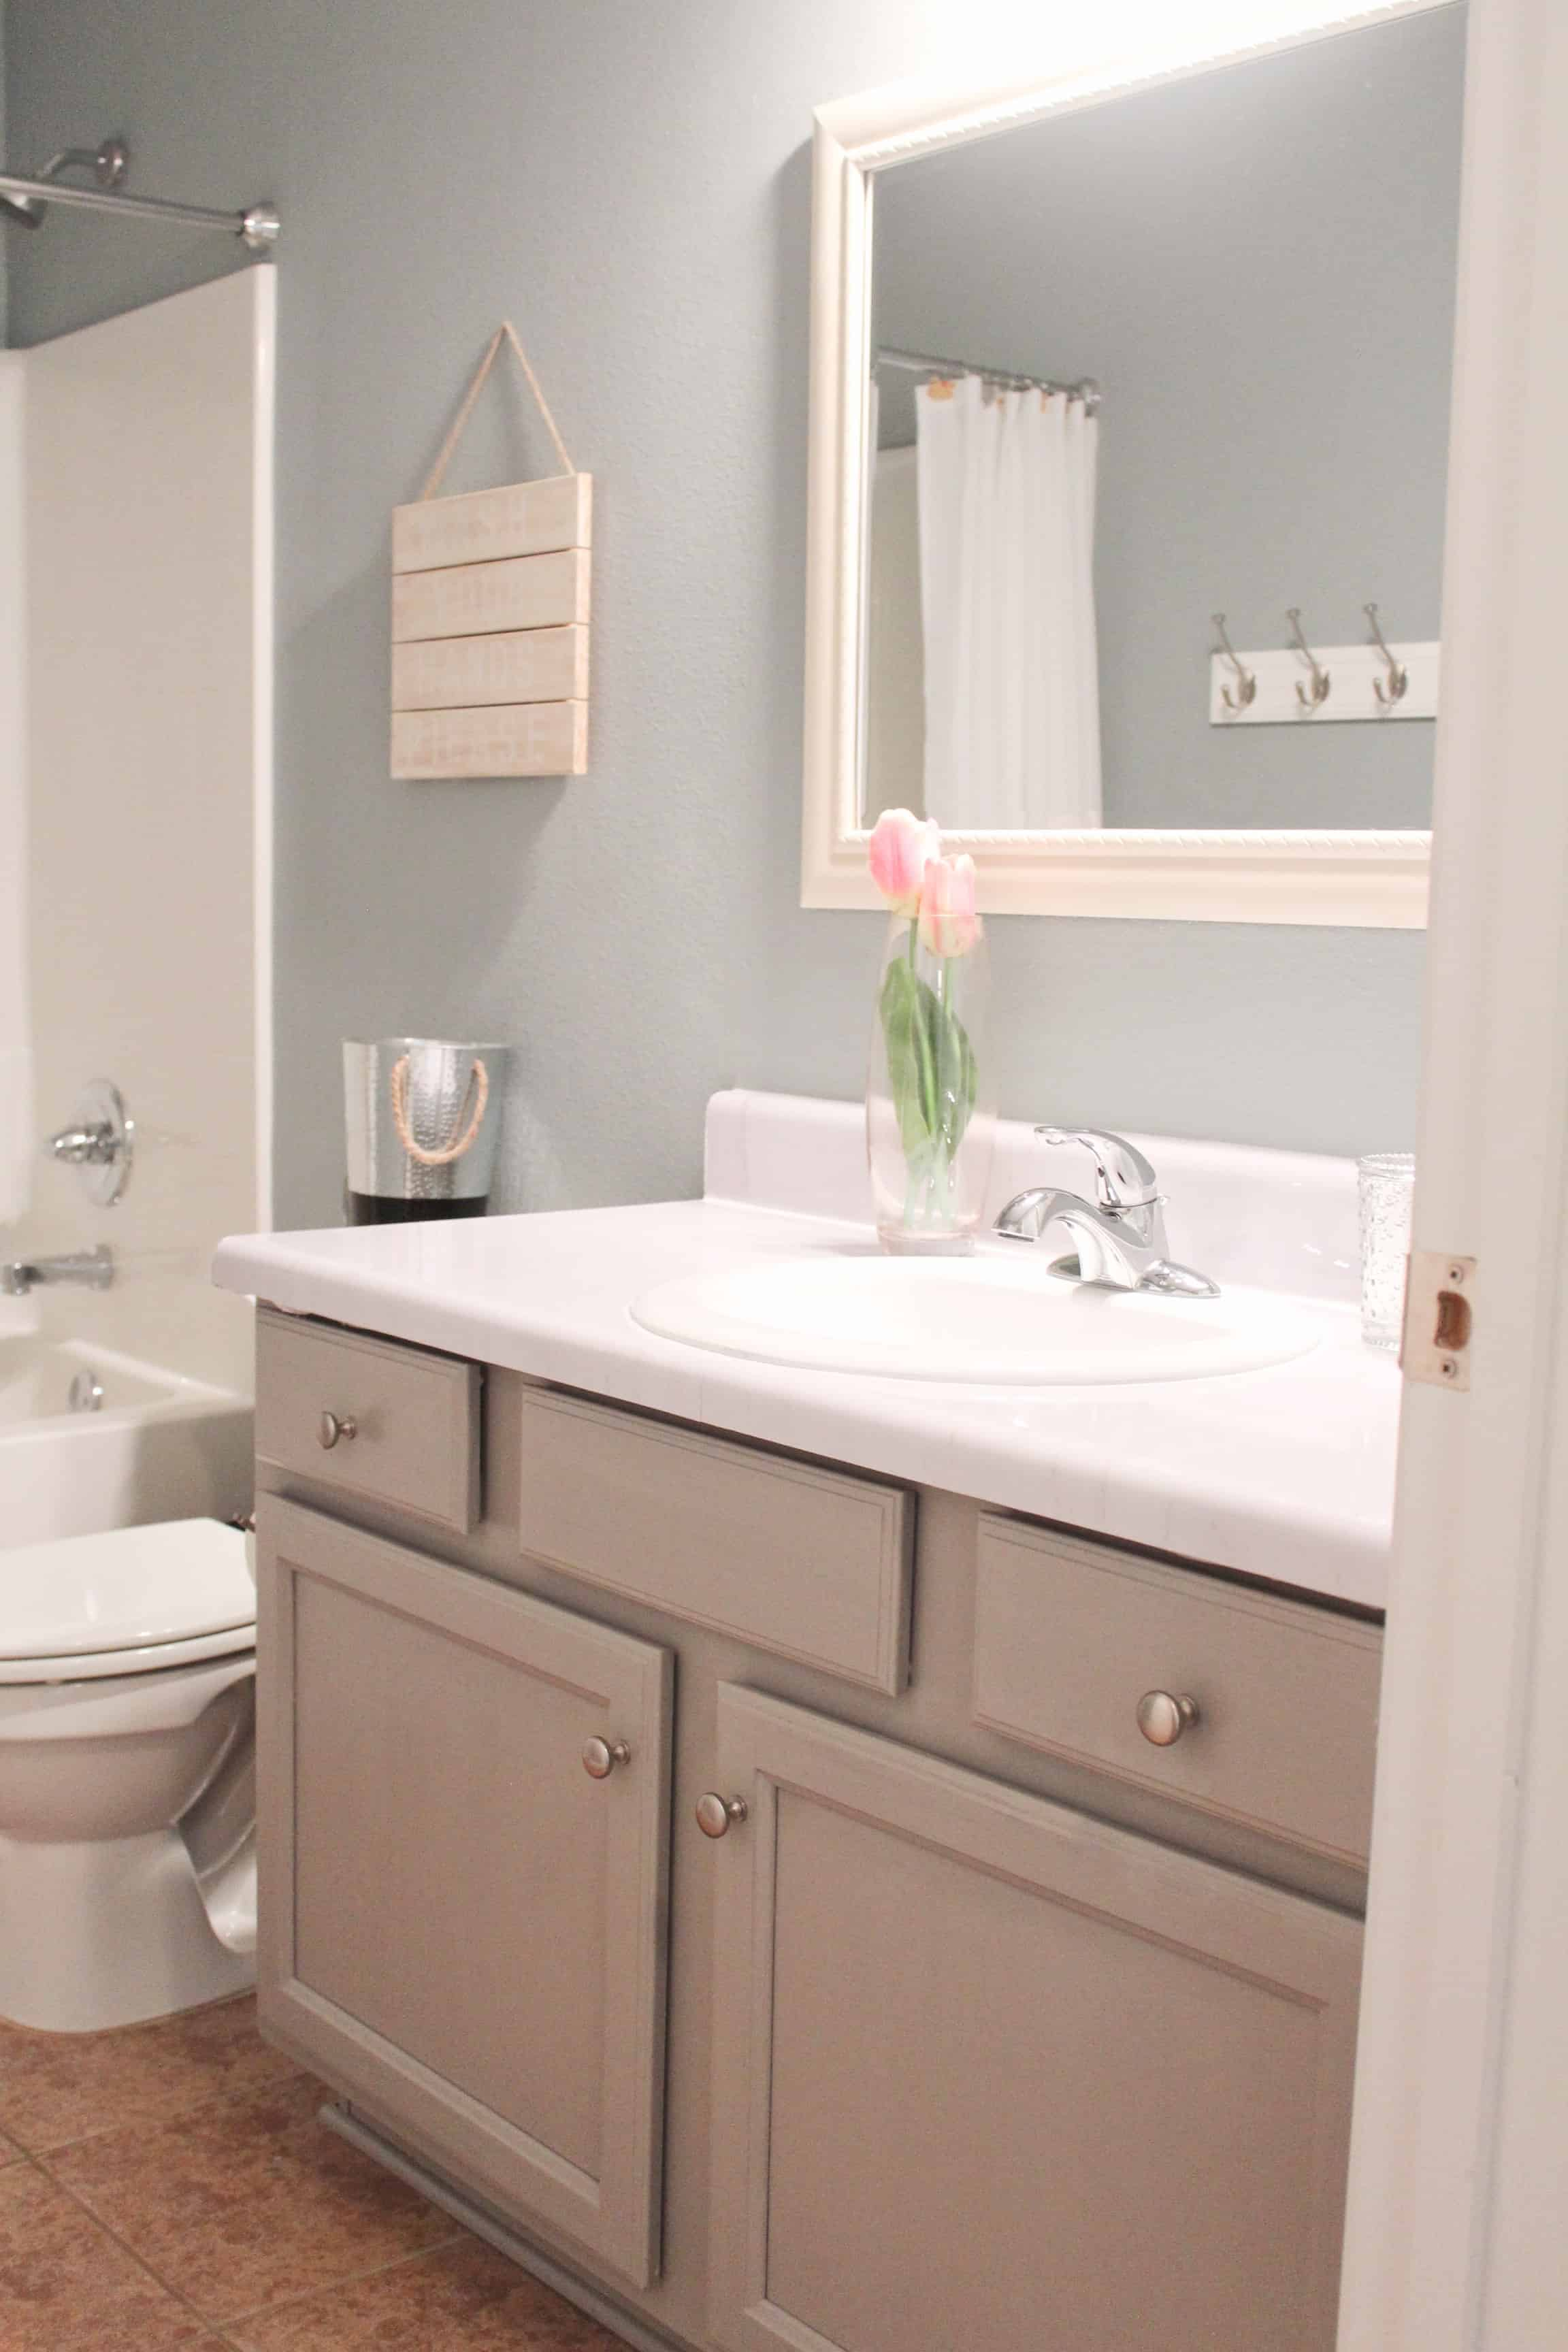 Bathroom update for under 100 including diy faux marble - Cheap bathroom vanities under 100 ...